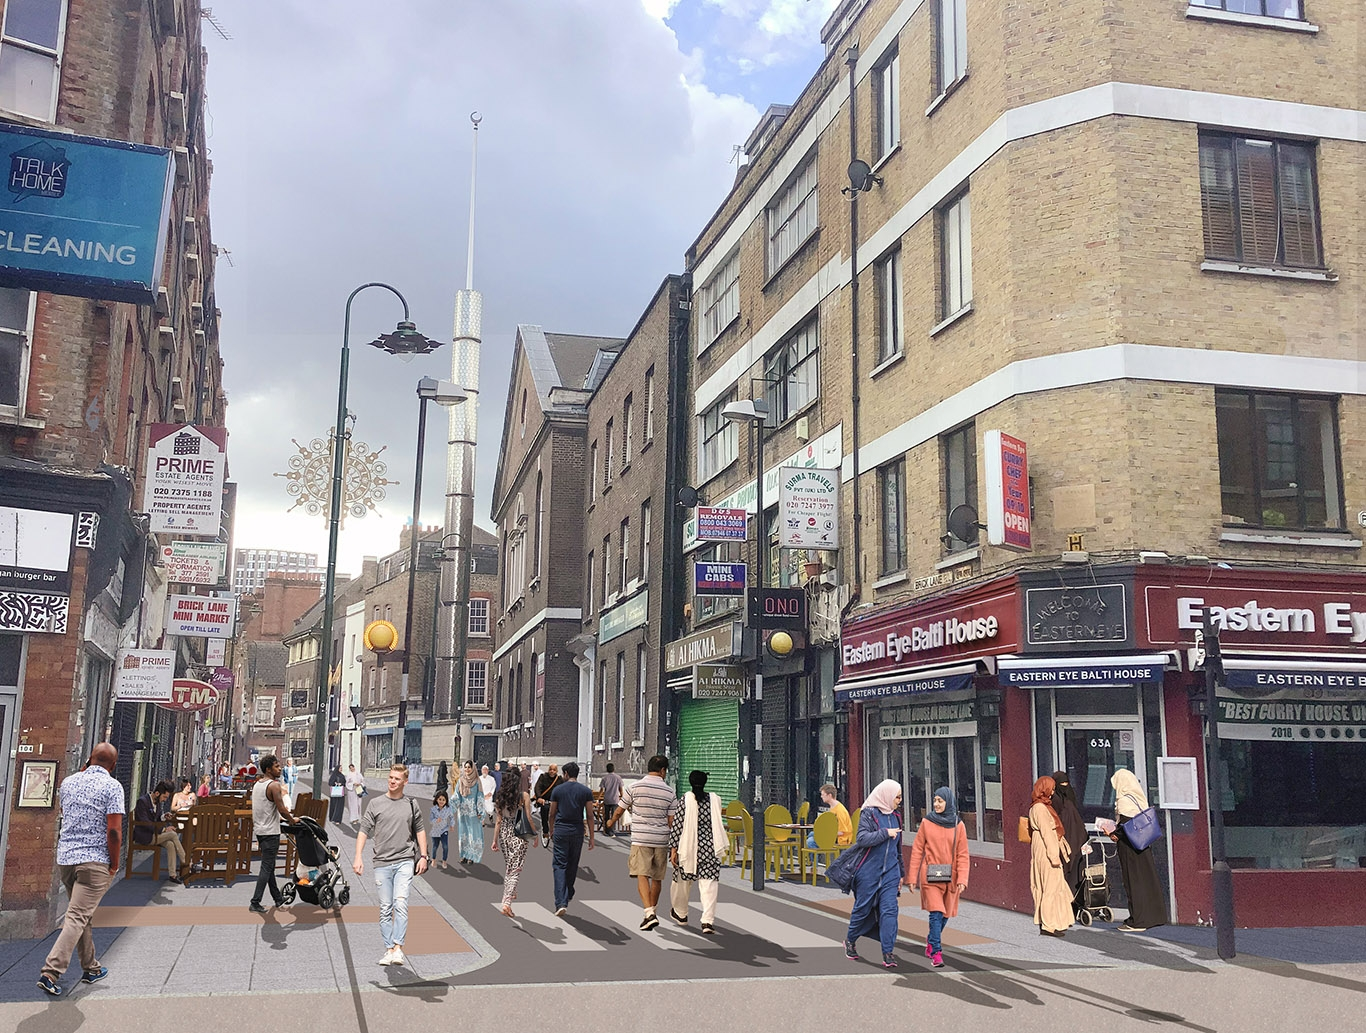 Proposals to make parts of Brick Lane traffic-free at evenings and weekends